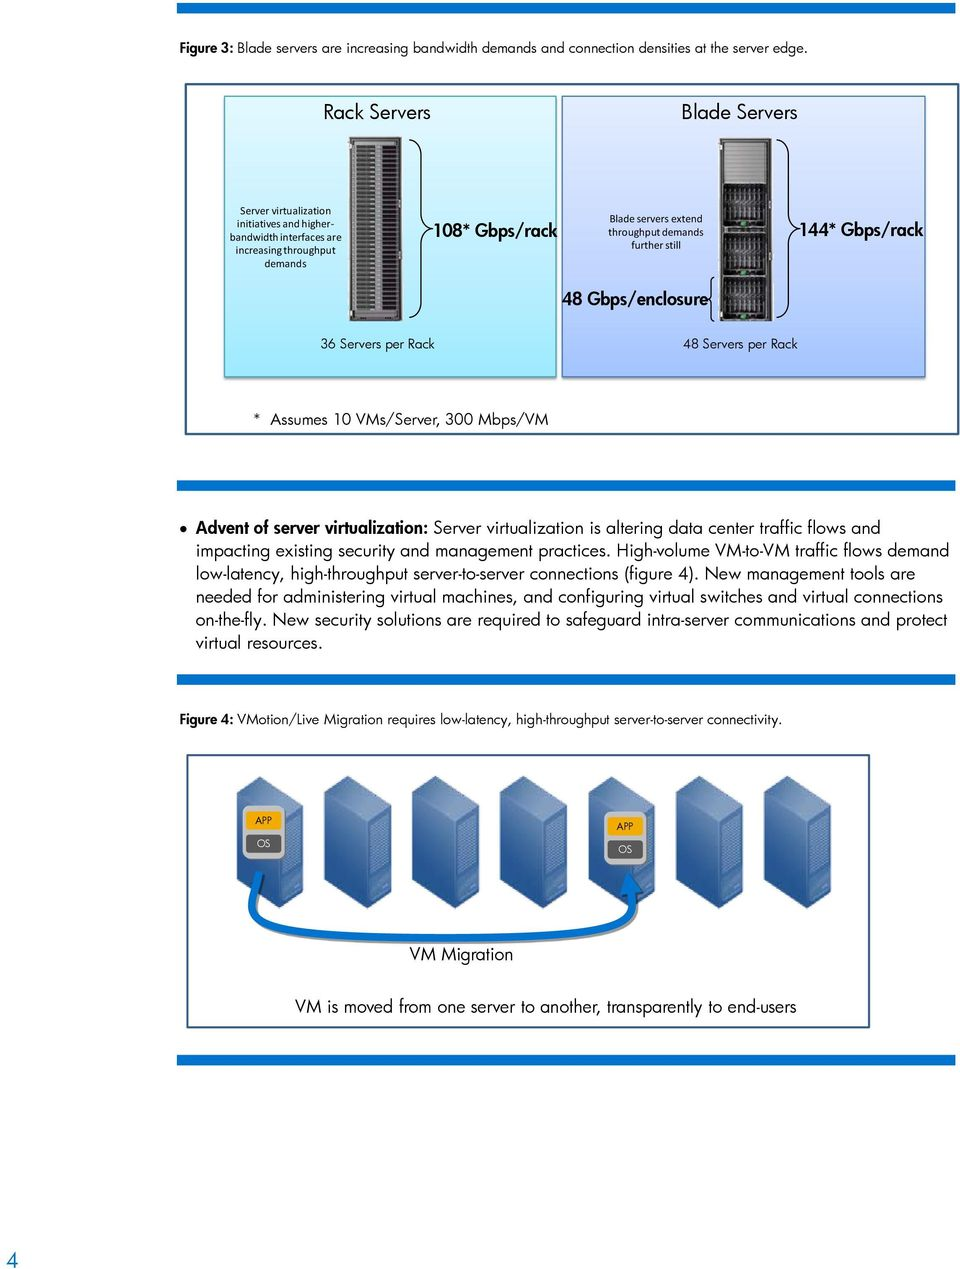 Gbps/rack 48 Gbps/enclosure 36 Servers per Rack 48 Servers per Rack * Assumes 10 VMs/Server, 300 Mbps/VM Advent of server virtualization: Server virtualization is altering data center traffic flows